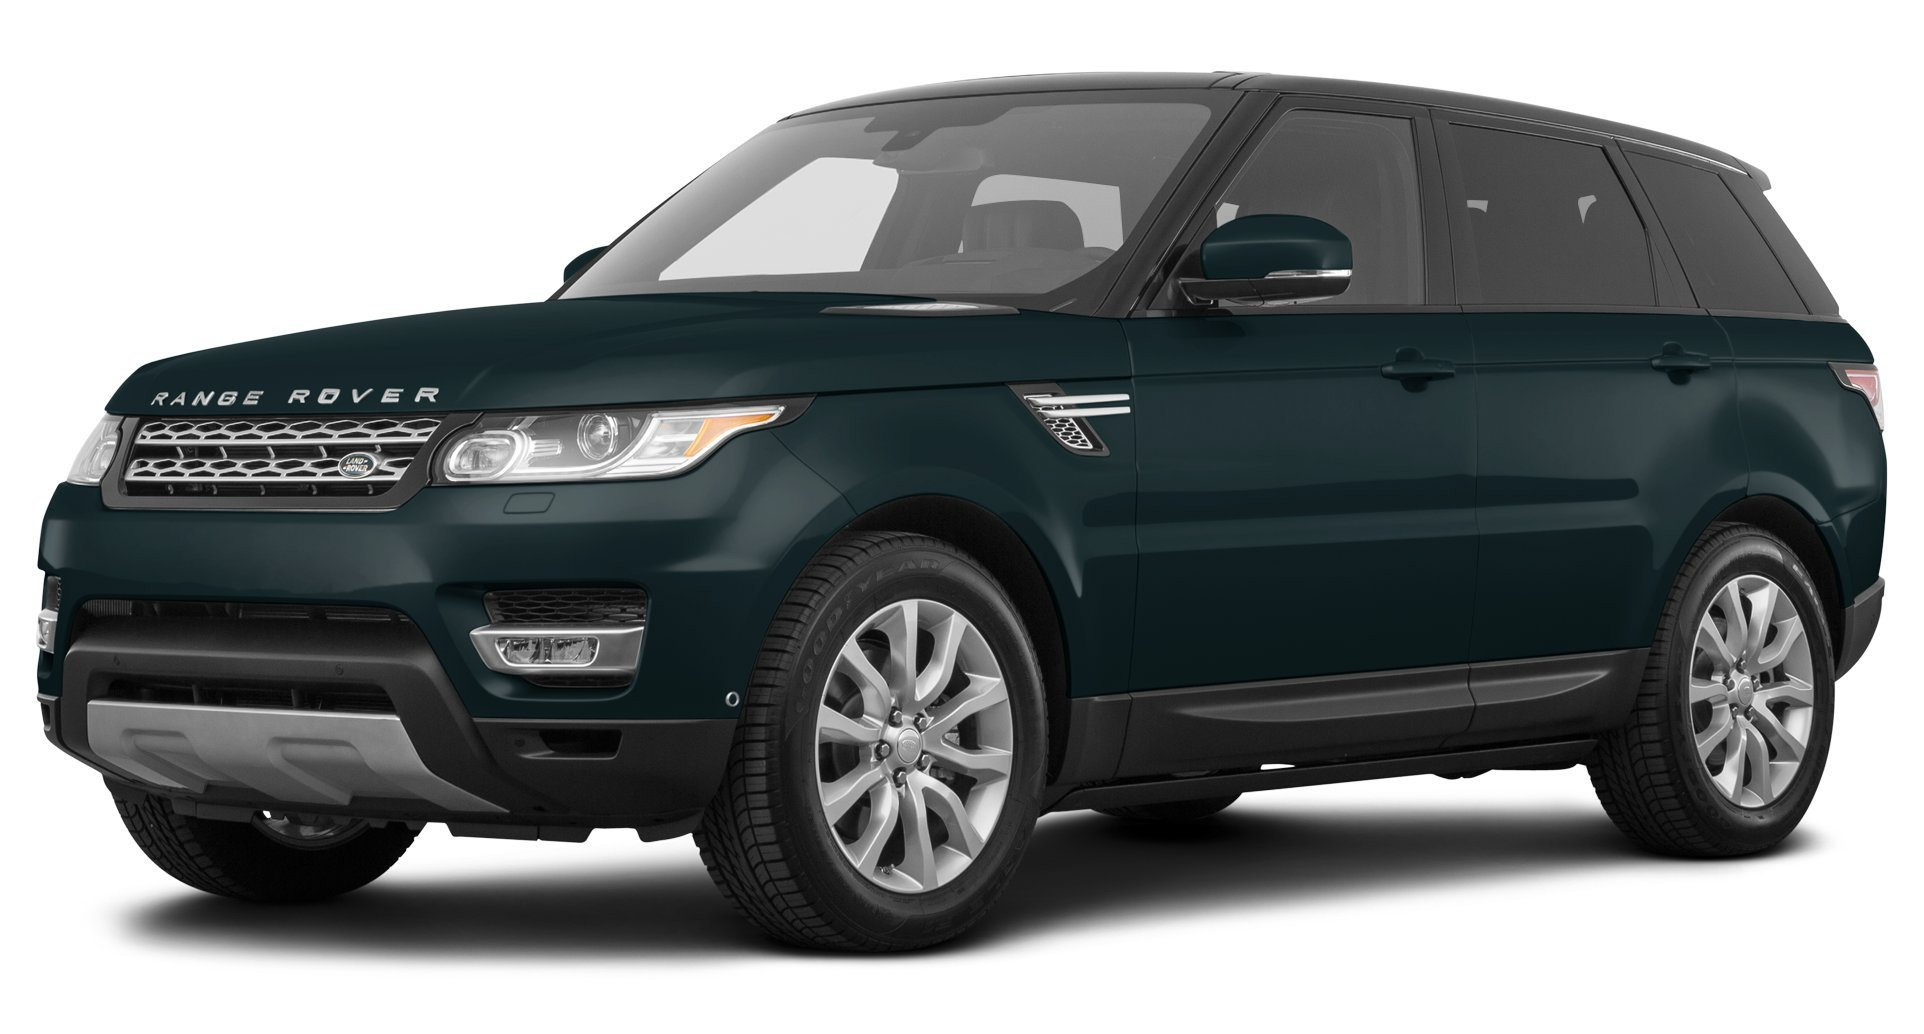 2016 land rover range rover sport reviews images and specs vehicles. Black Bedroom Furniture Sets. Home Design Ideas